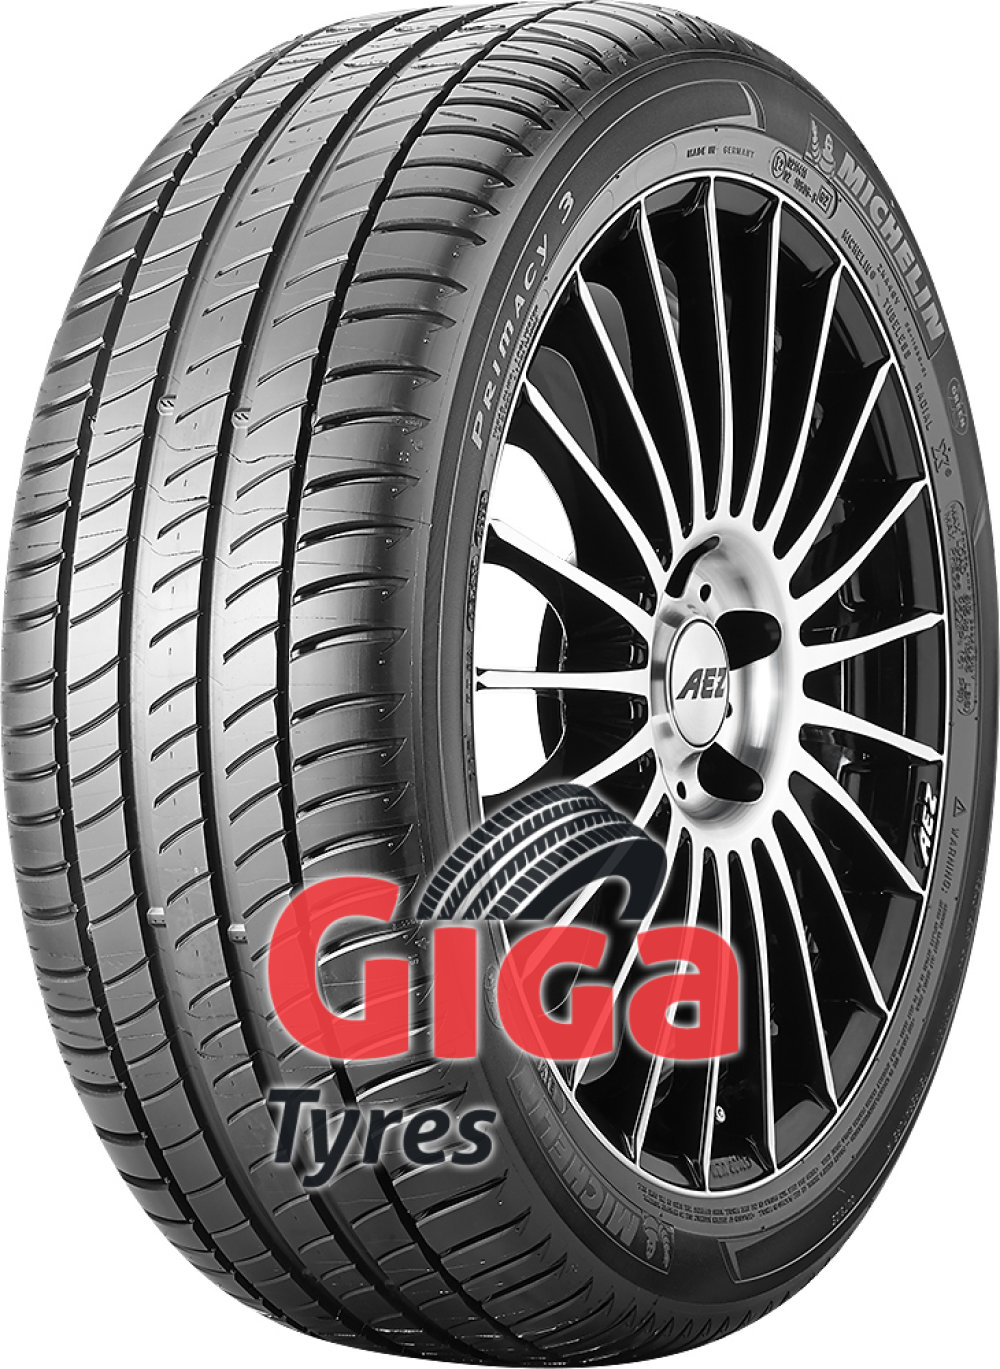 Michelin Primacy 3 ( 215/65 R16 98V with rim protection ridge (FSL) )